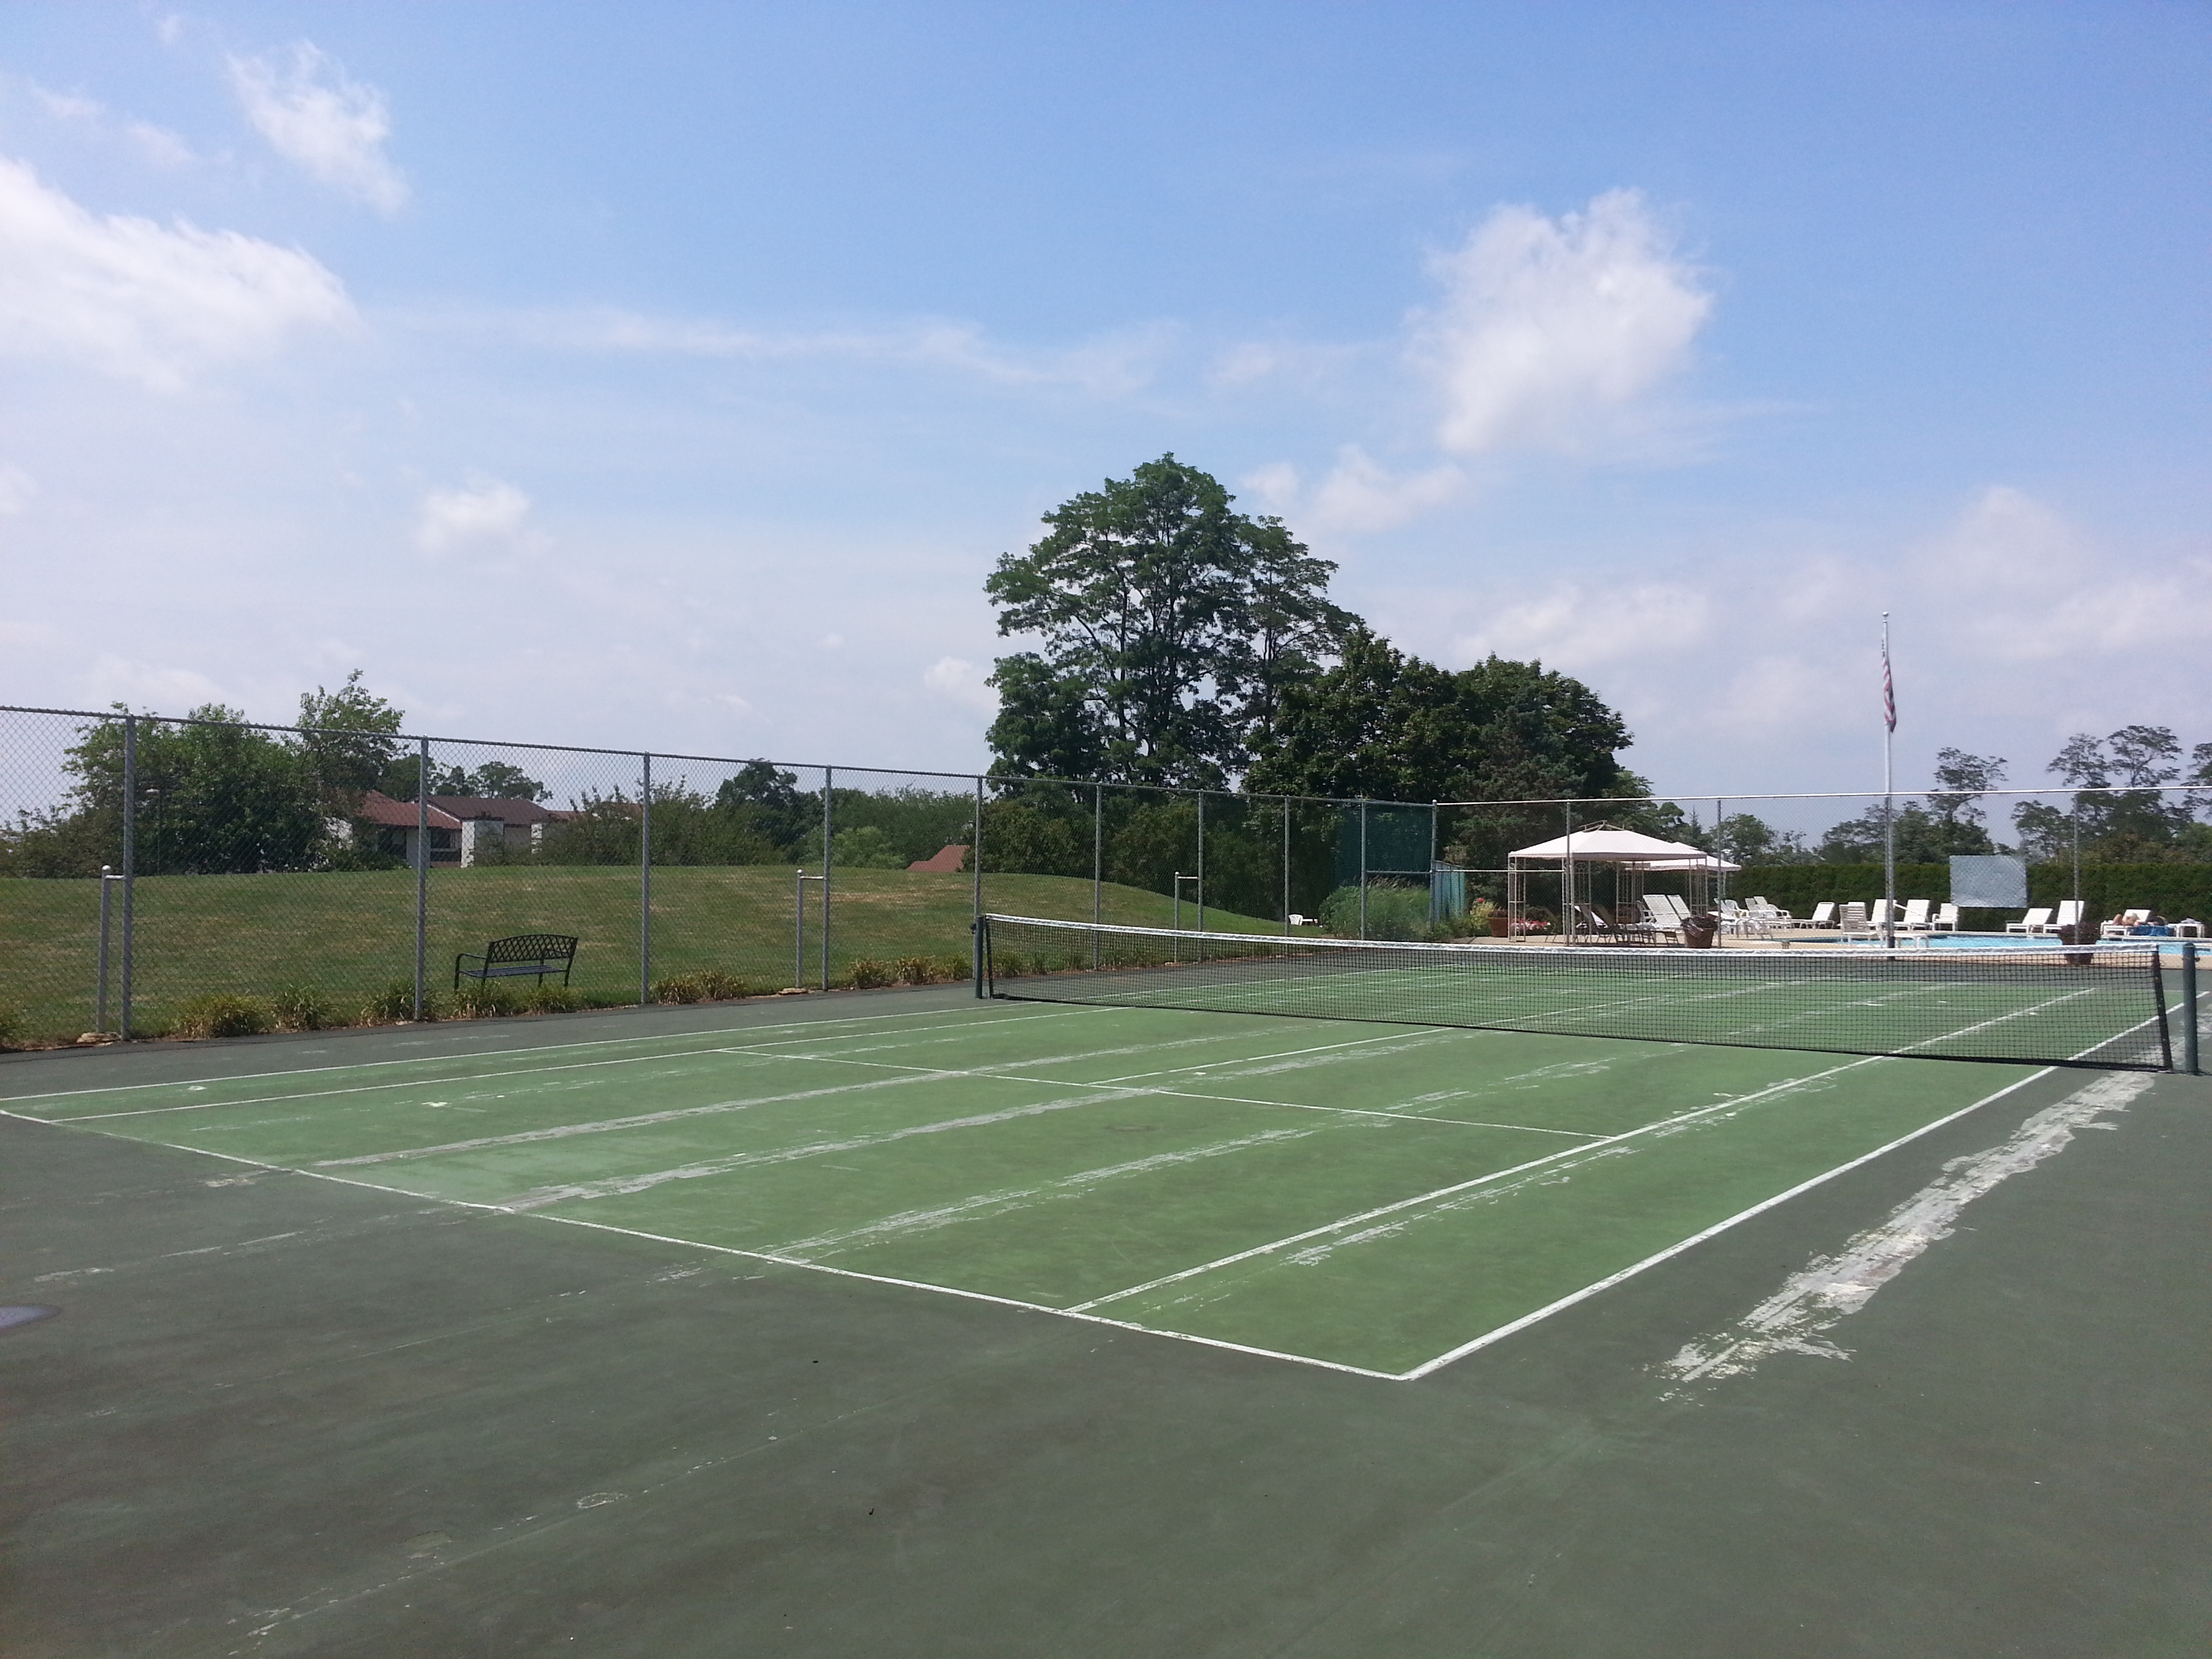 Located next to the pool, this tennis court is another of the Tower Hill amenities.